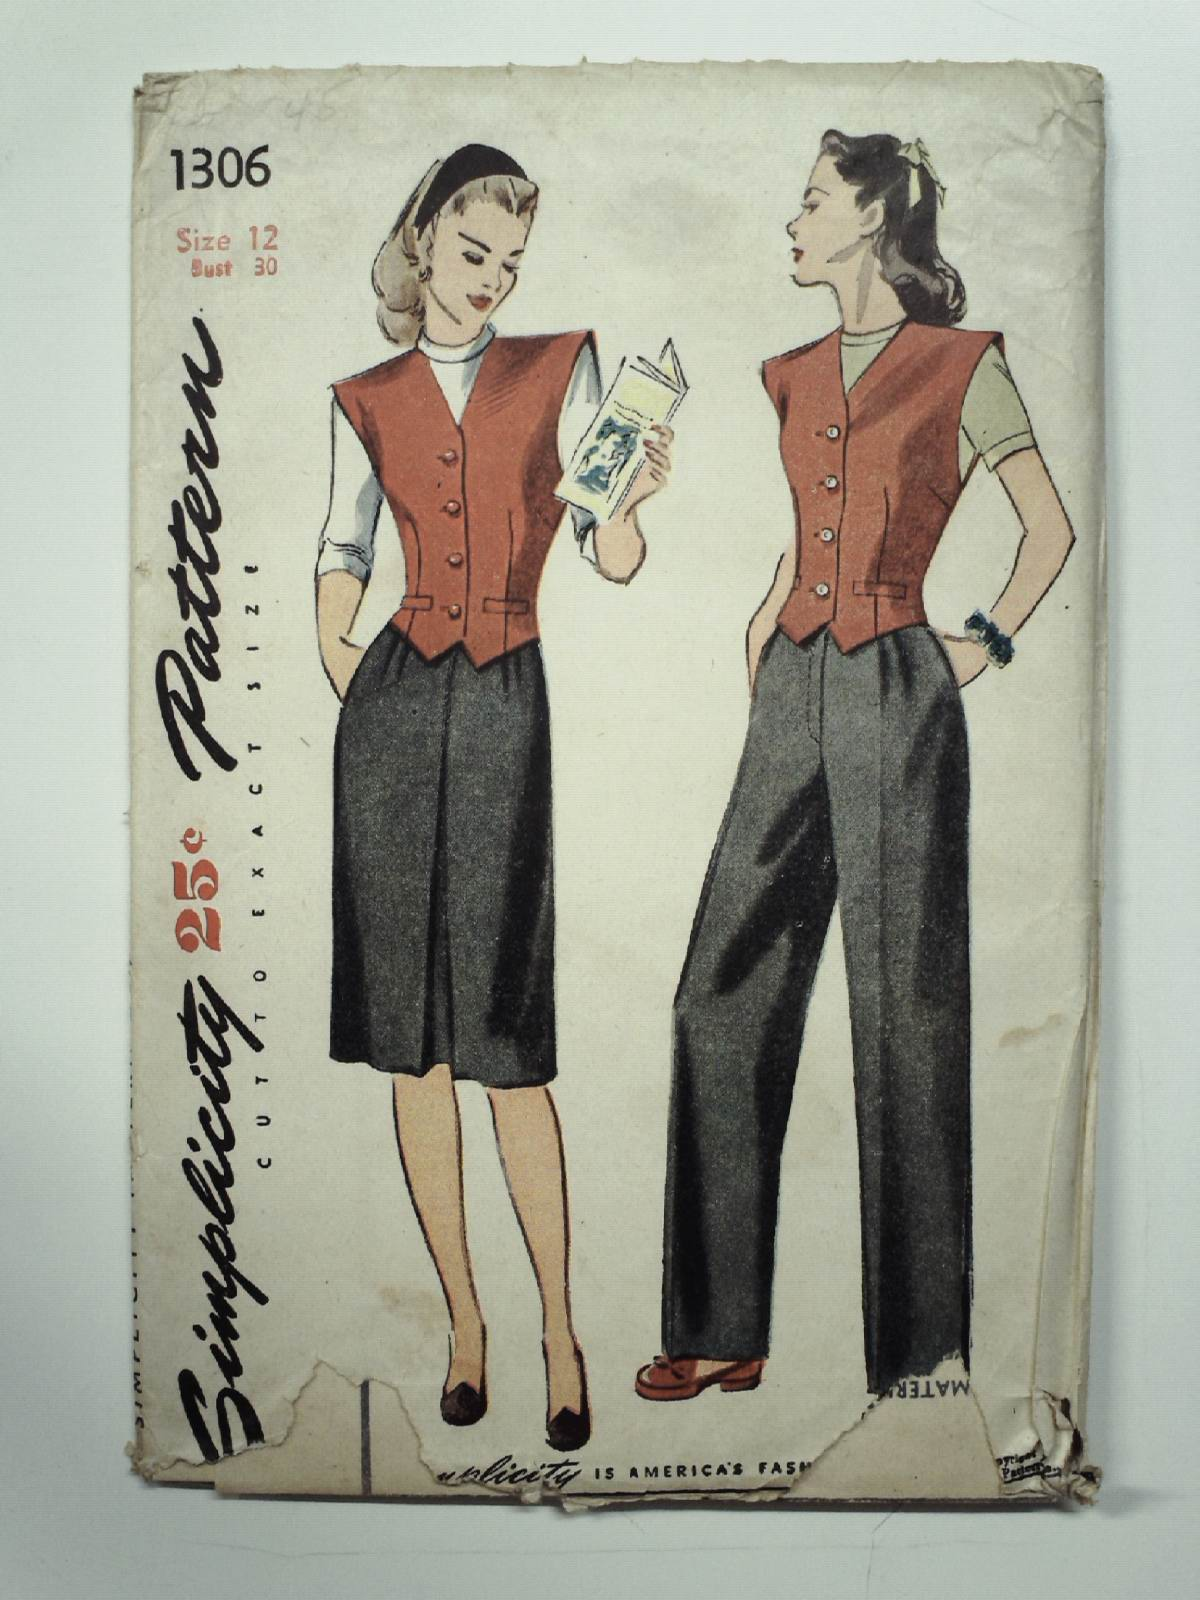 40s -Simplicity Pattern No. 1306- Womens skirt, slacks and vest. The skirt and slacks are fashioned with trouser pleats at front waistline, darts at back waistline and vertical pockets at either side. A center front inverted pleat trims the skirt front and the skirt back is seamed down the center. The slacks have a fly opening secured with a slide fastener. Welt pockets trim the dart fitted vest which features extended shoulders and a four button front closing.